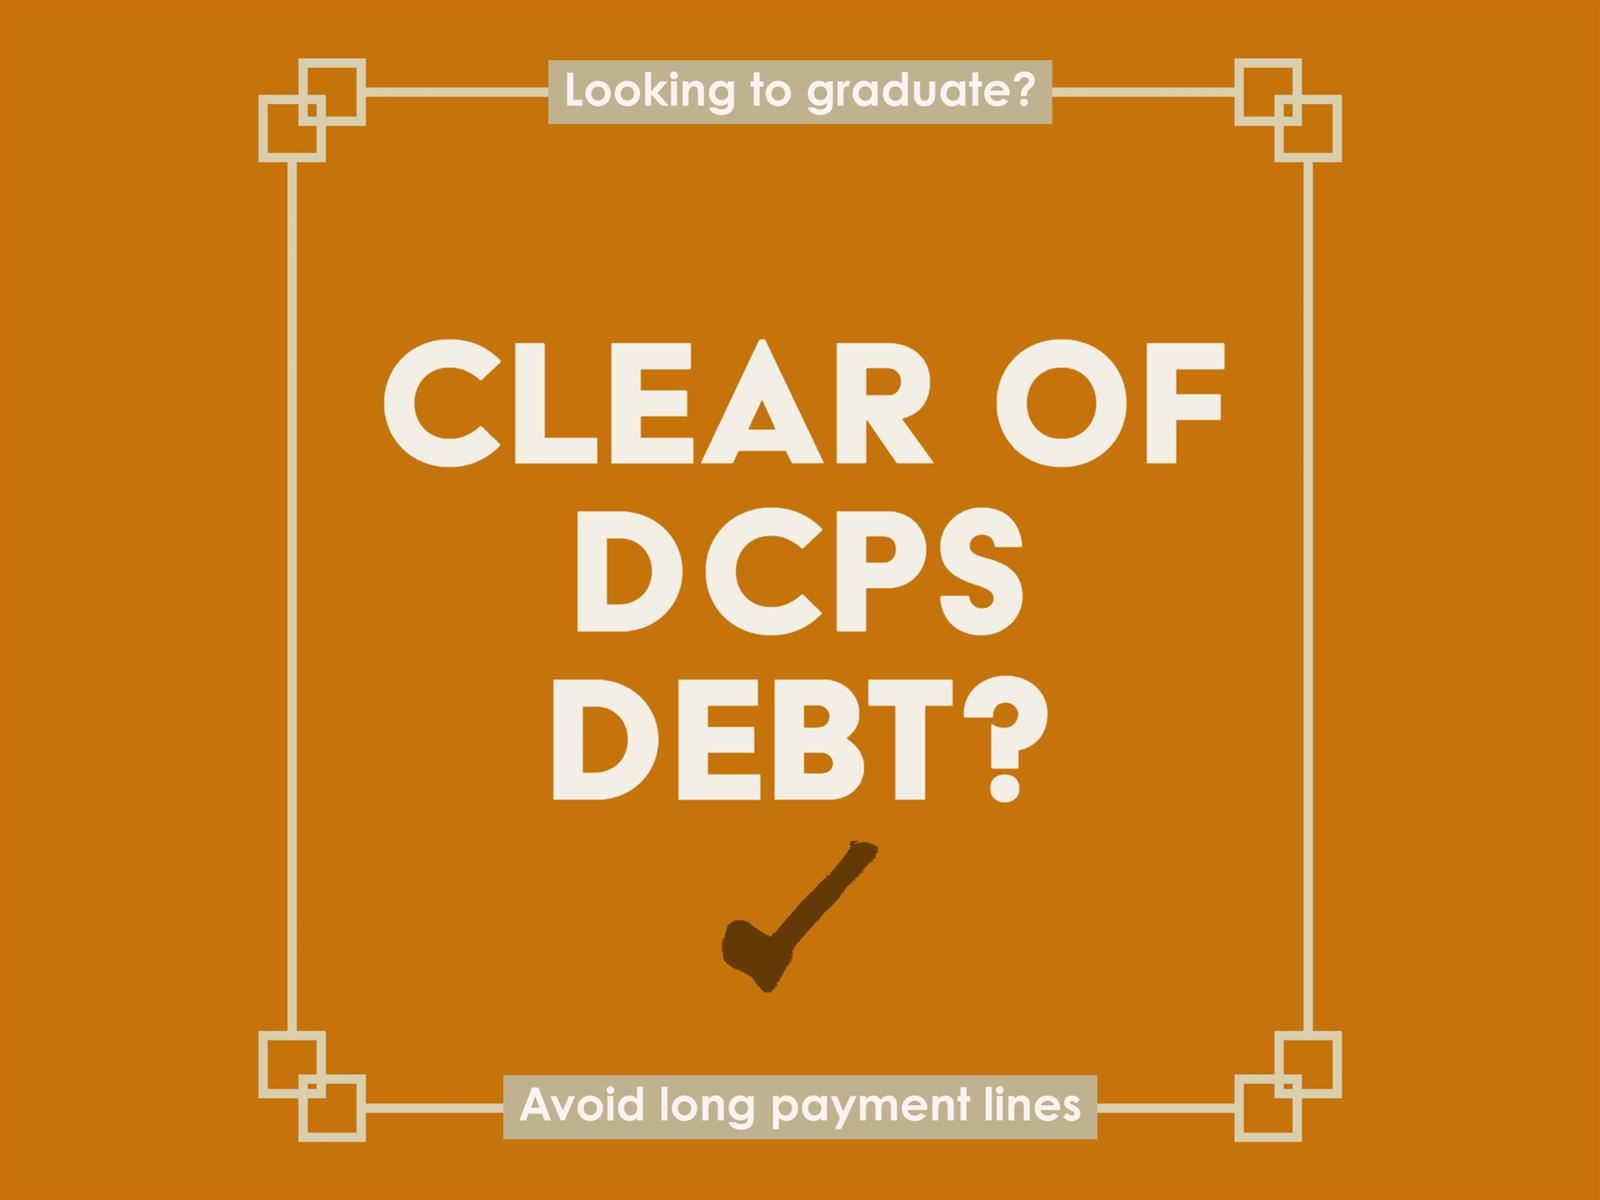 Clear of DCPS Debt?